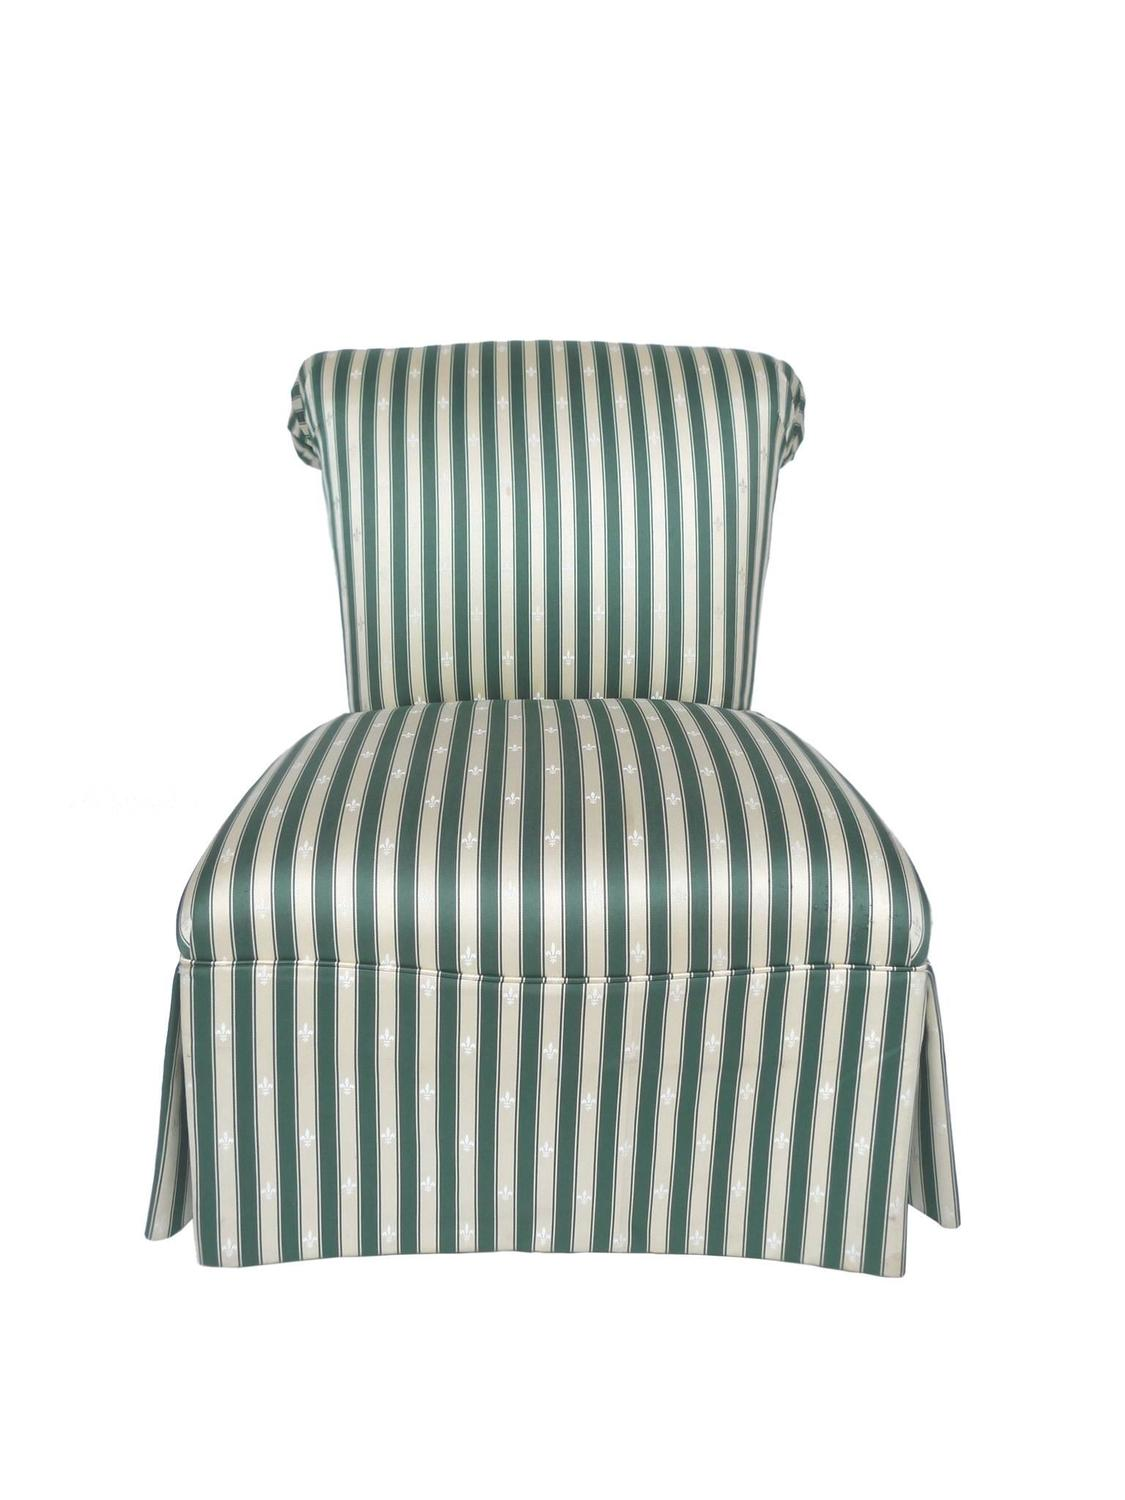 Pair Of Henredon Striped Silk Slipper Chairs At 1stdibs